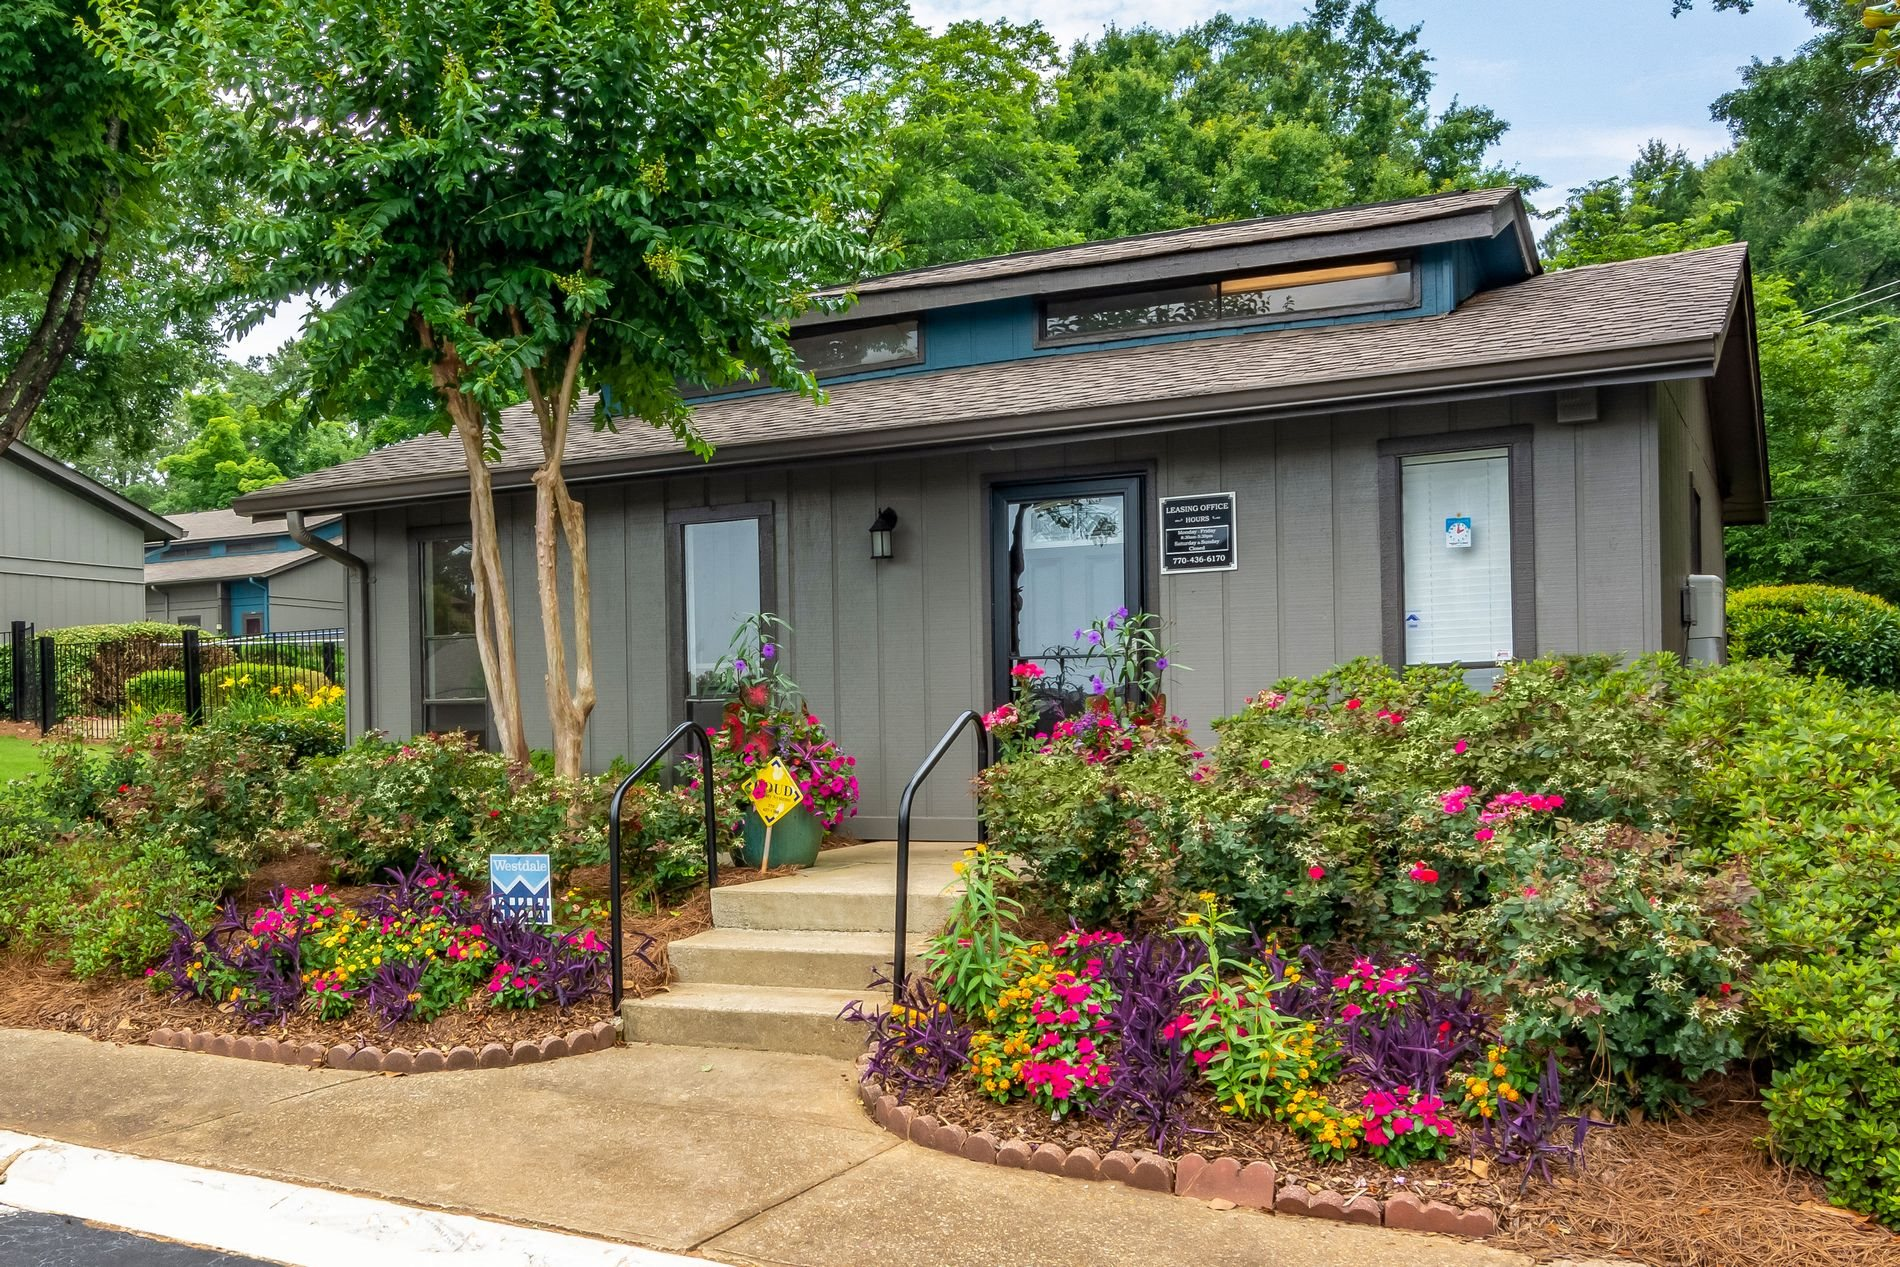 Leasing Office Exterior at Pine Village North Apartment Homes in Smyrna, Georgia, GA